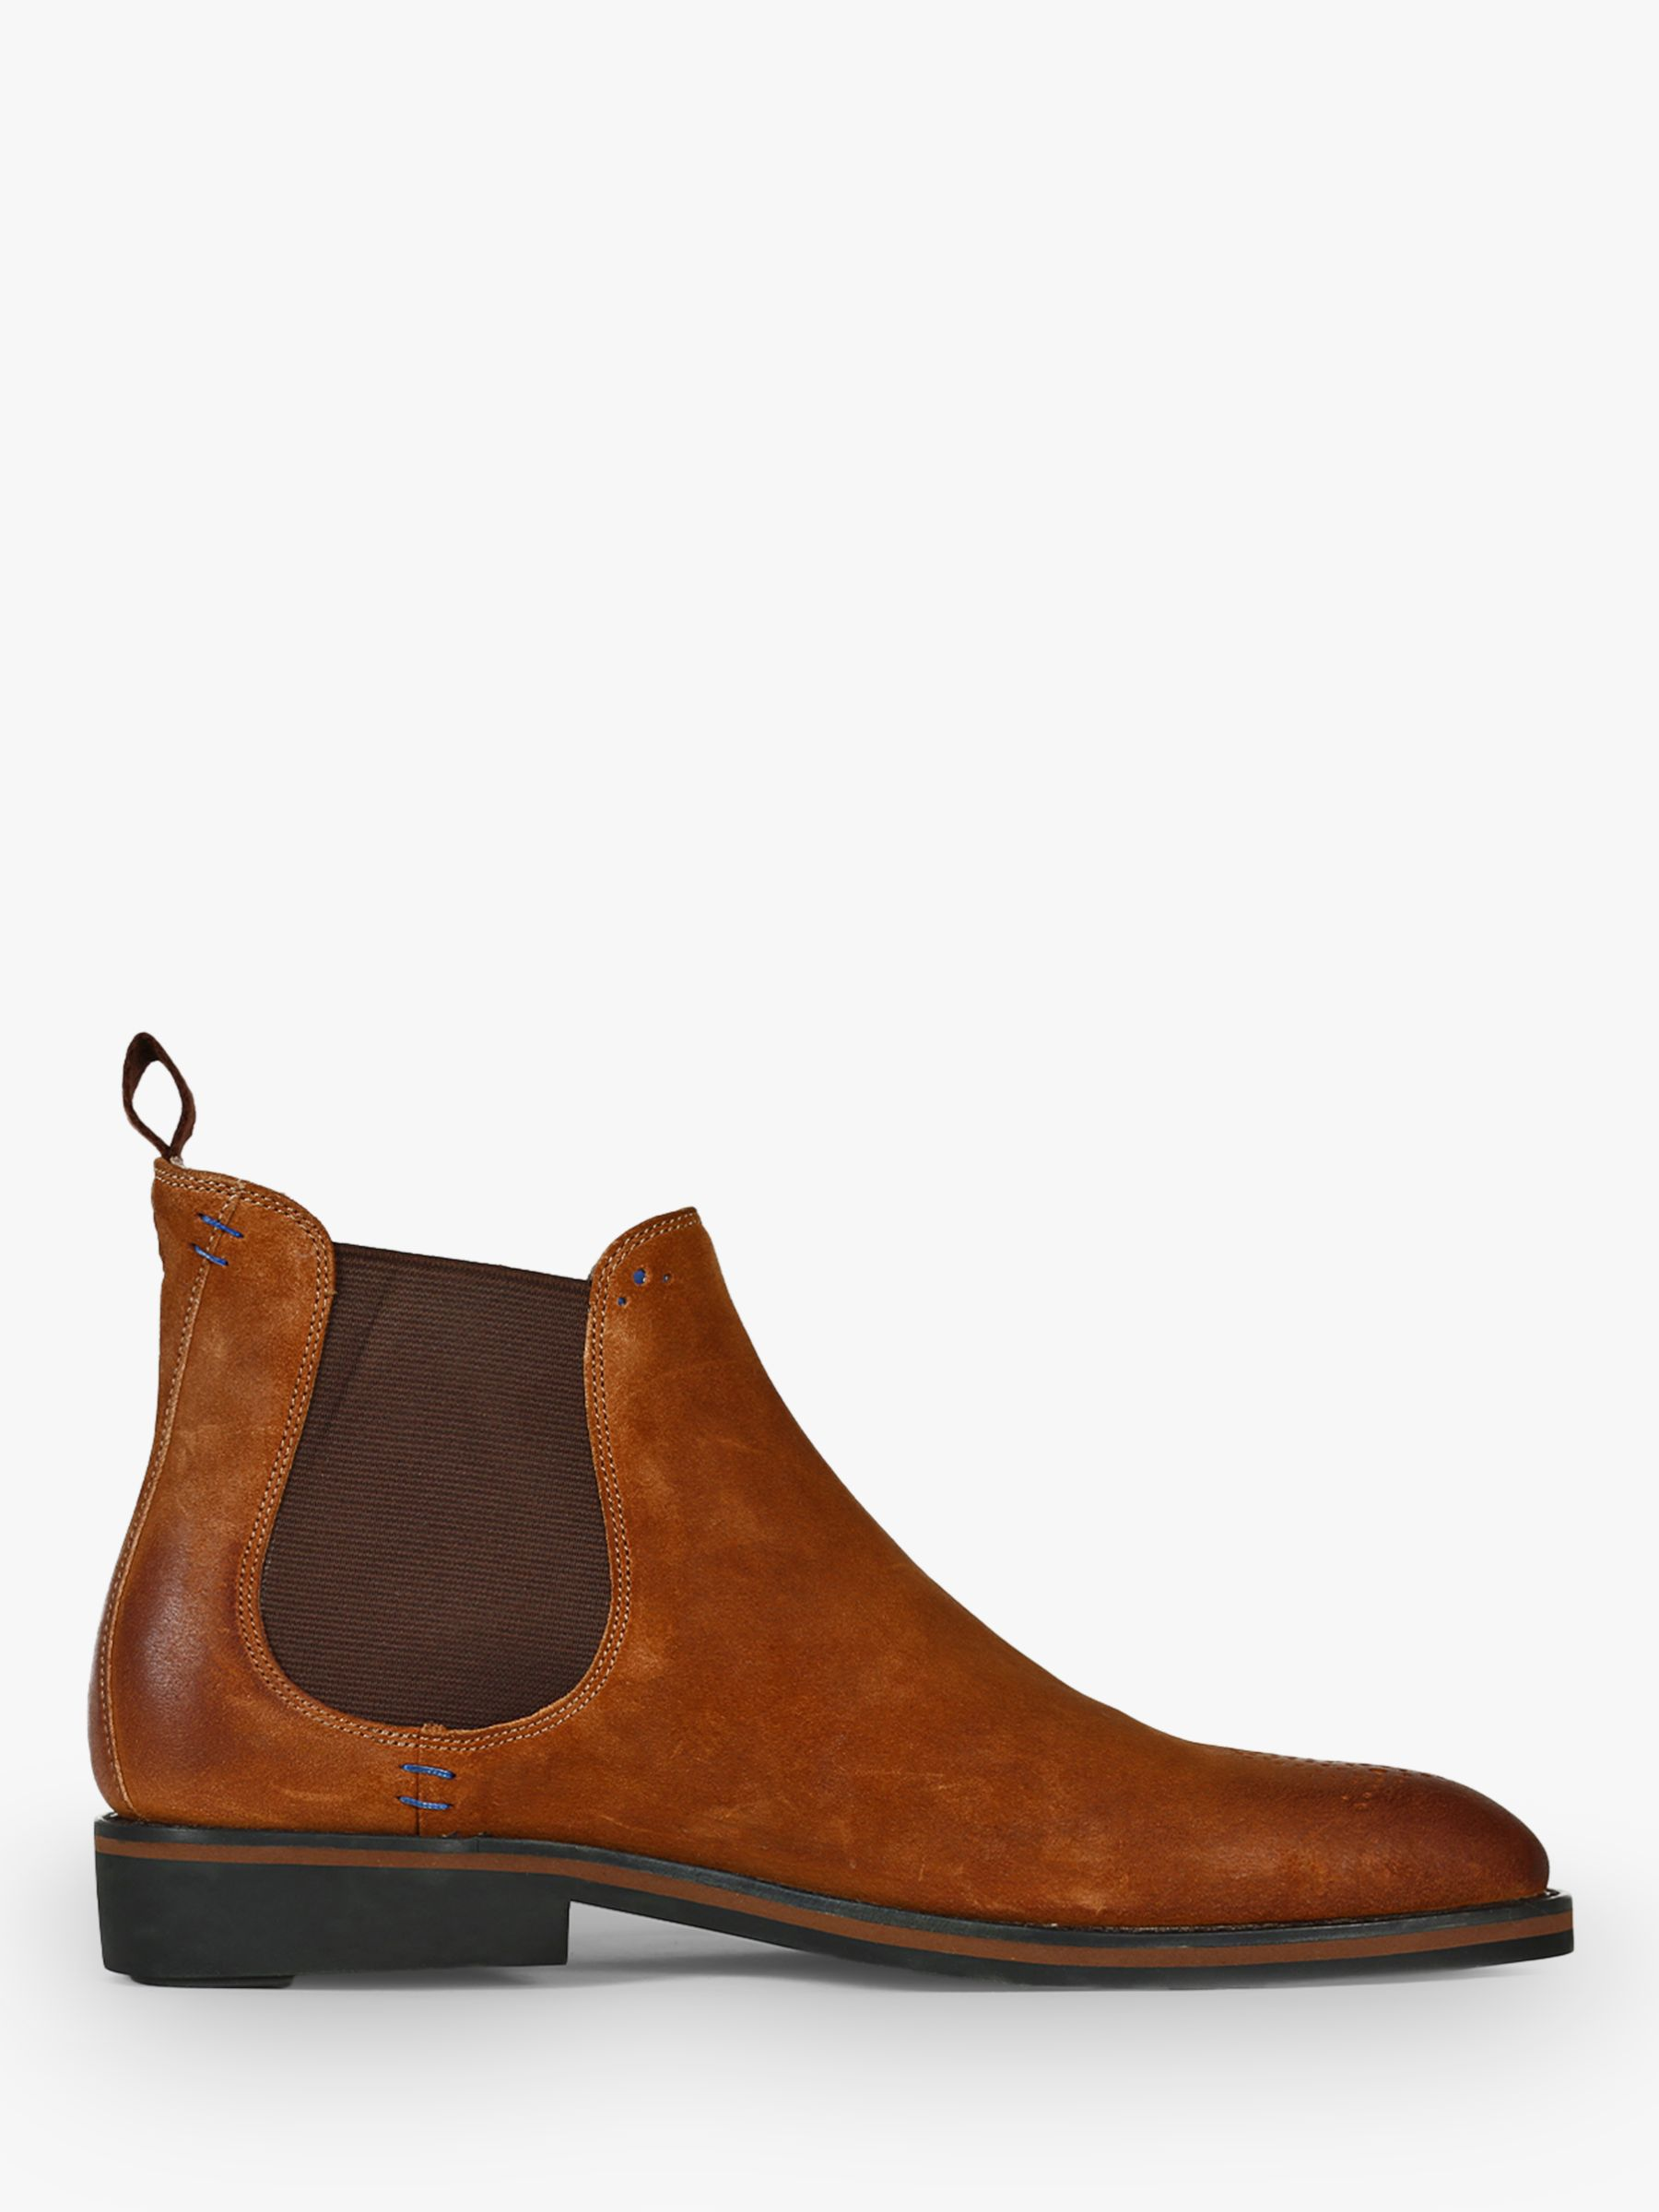 Oliver Sweeney Oliver Sweeney Burrows Leather Chelsea Boots, Whiskey